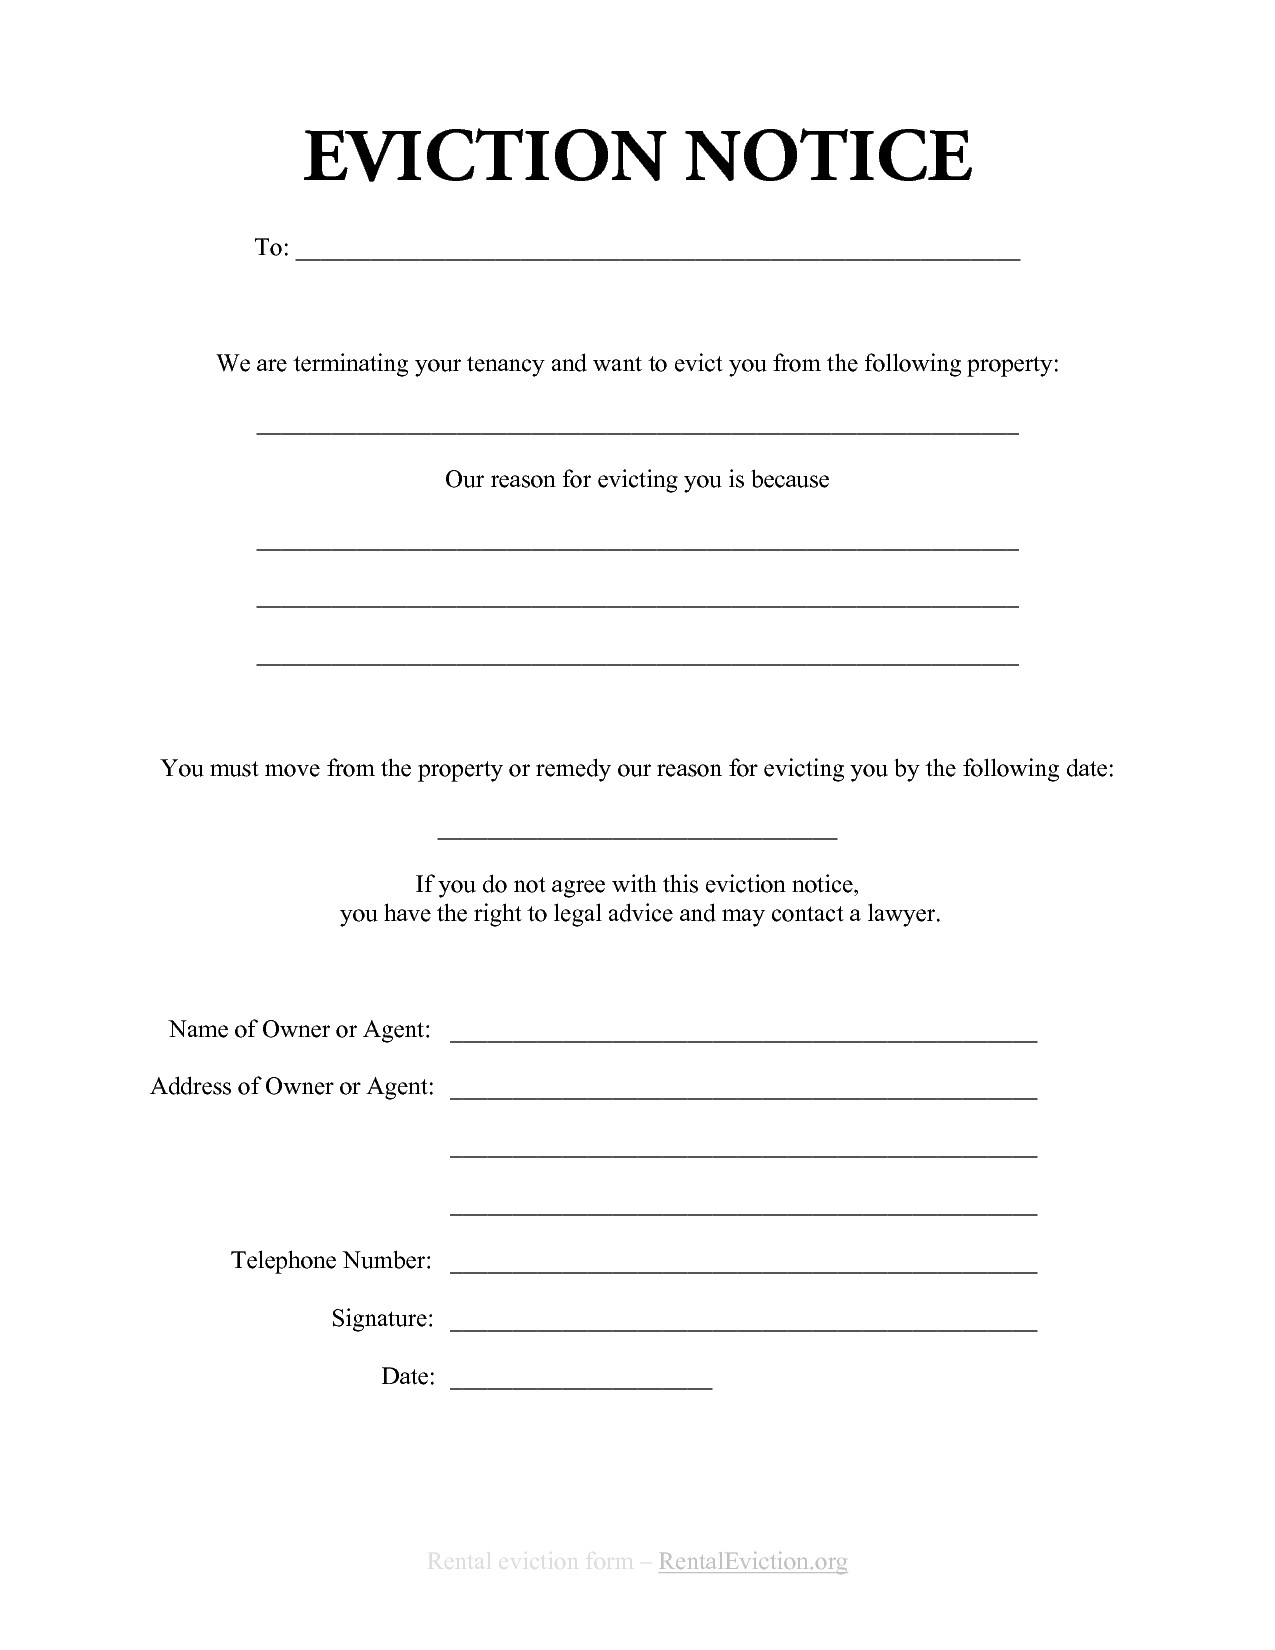 Eviction Letter Template Florida - Eviction Notice Template Alberta Free